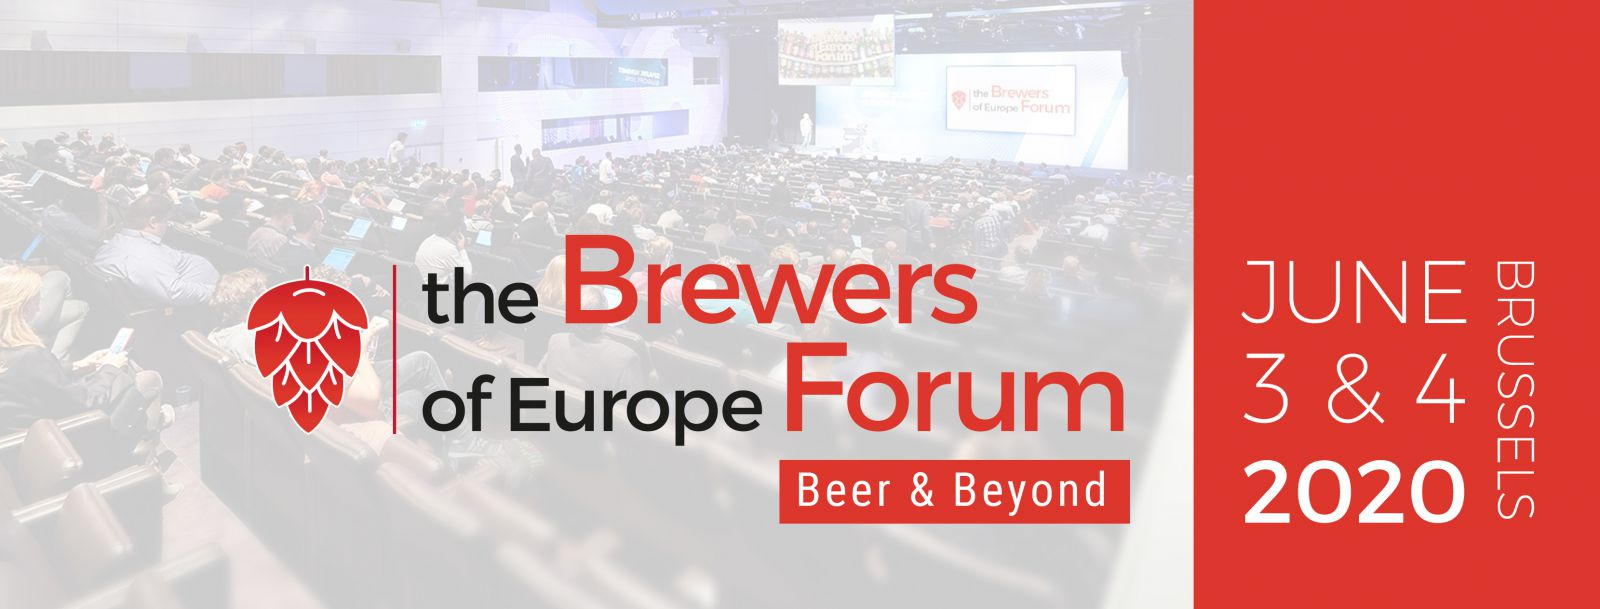 The Brewers Forum 2020